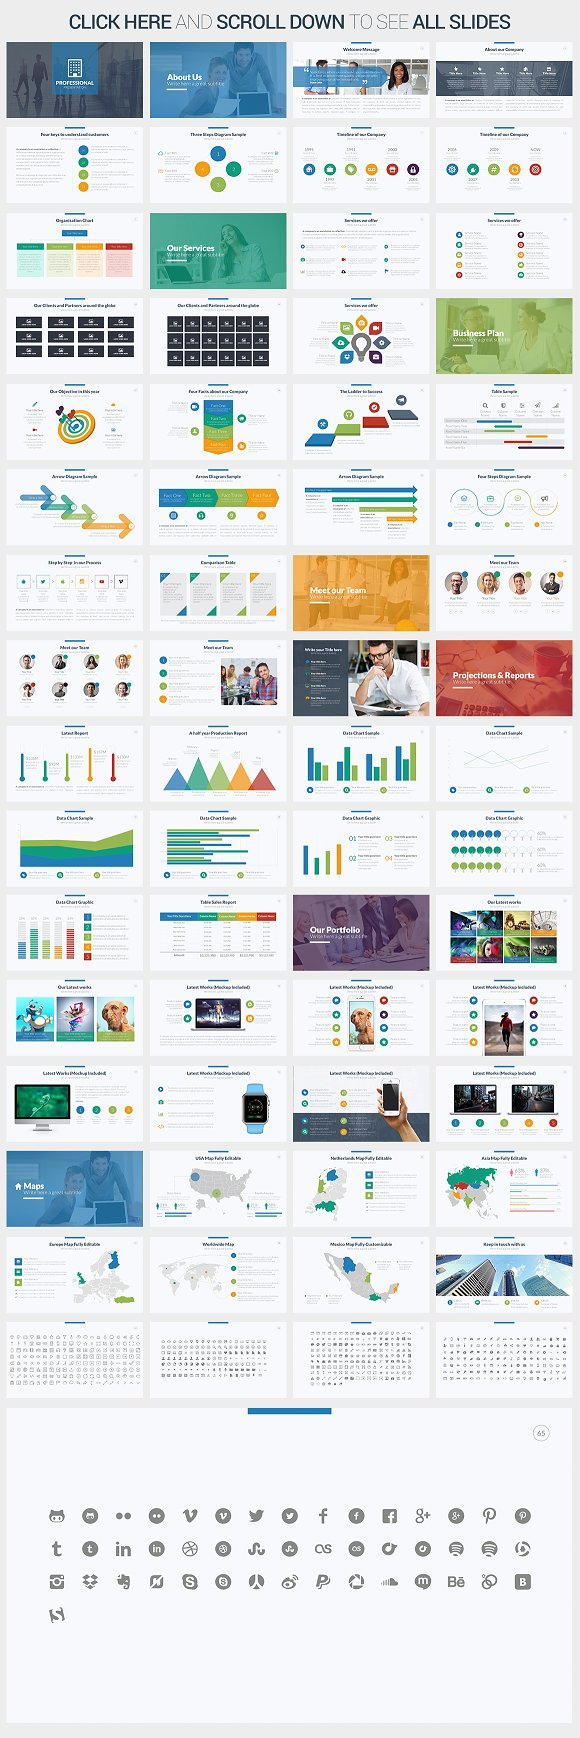 Professional Powerpoint Template ~ Presentation Templates ~ Creative ...